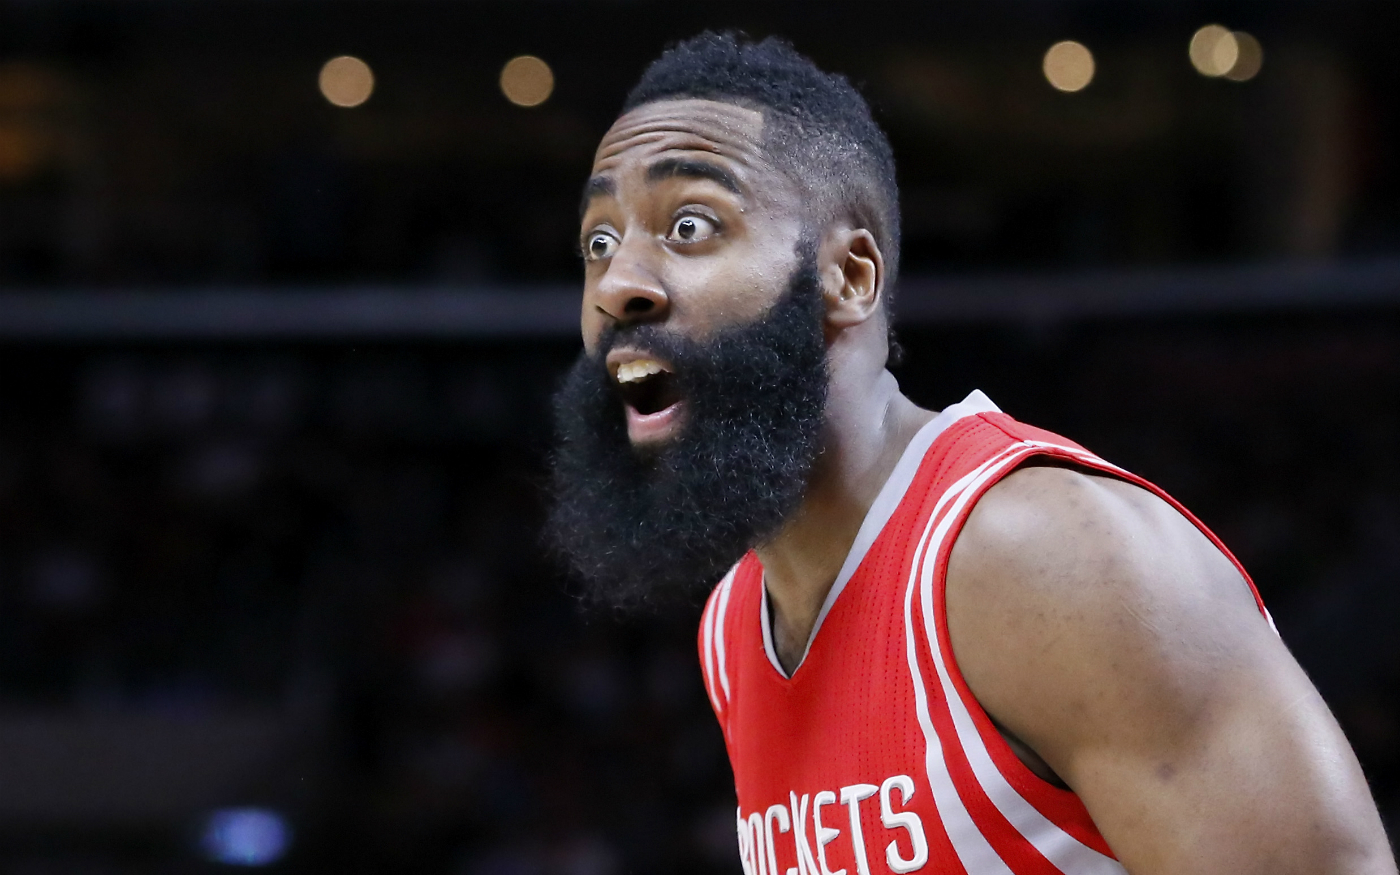 Les pronostics du jour : Harden va dominer les Warriors